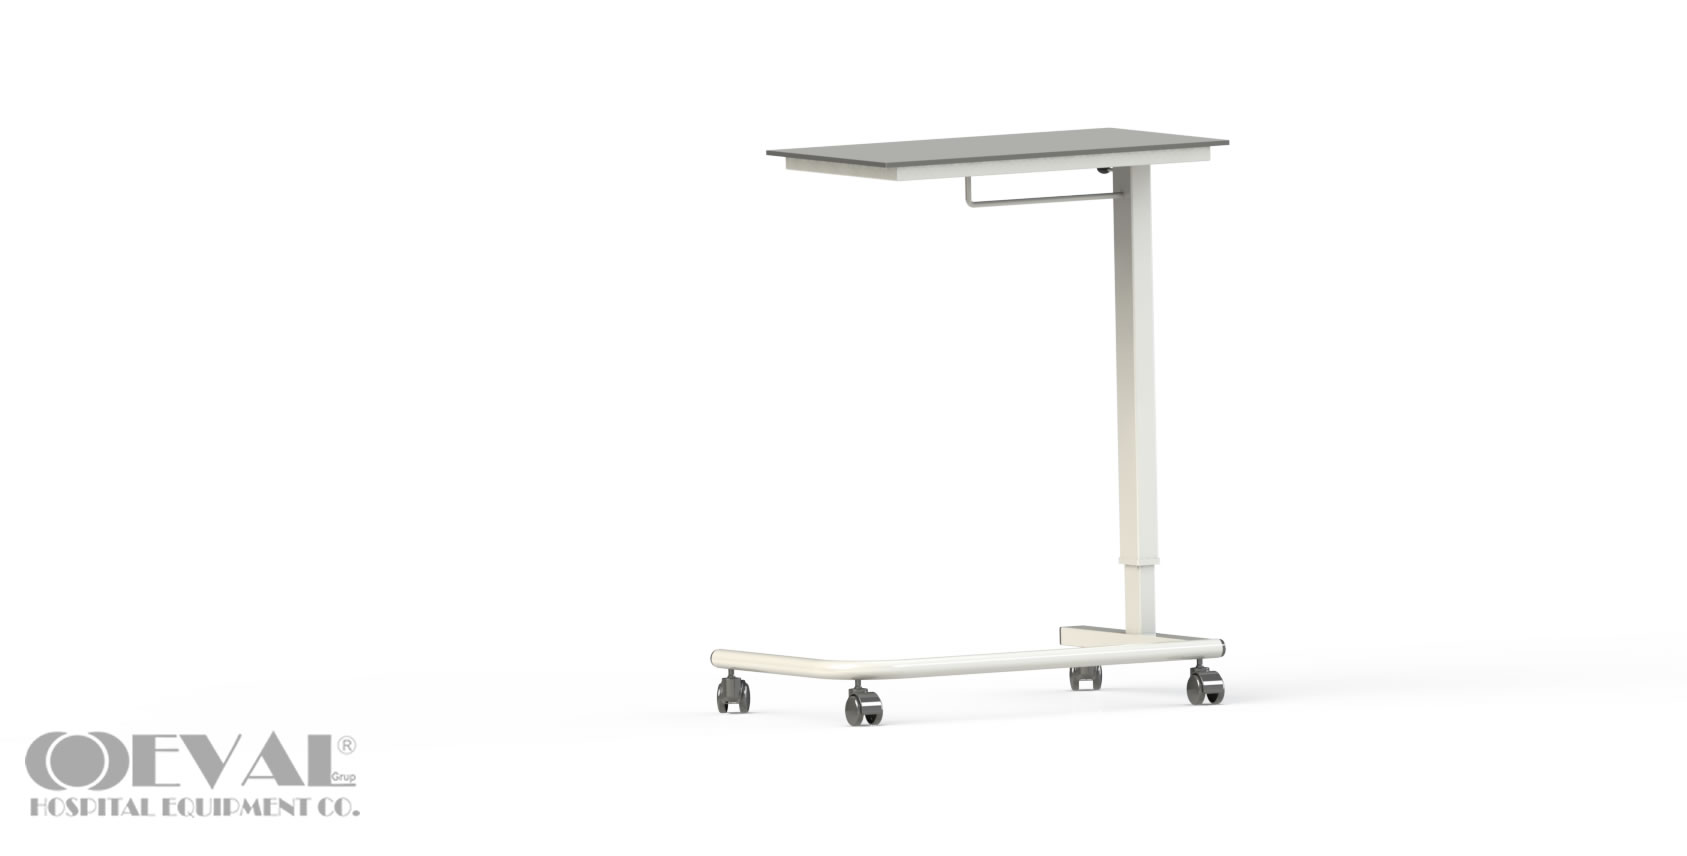 C 01 HPL OVERBED TABLE